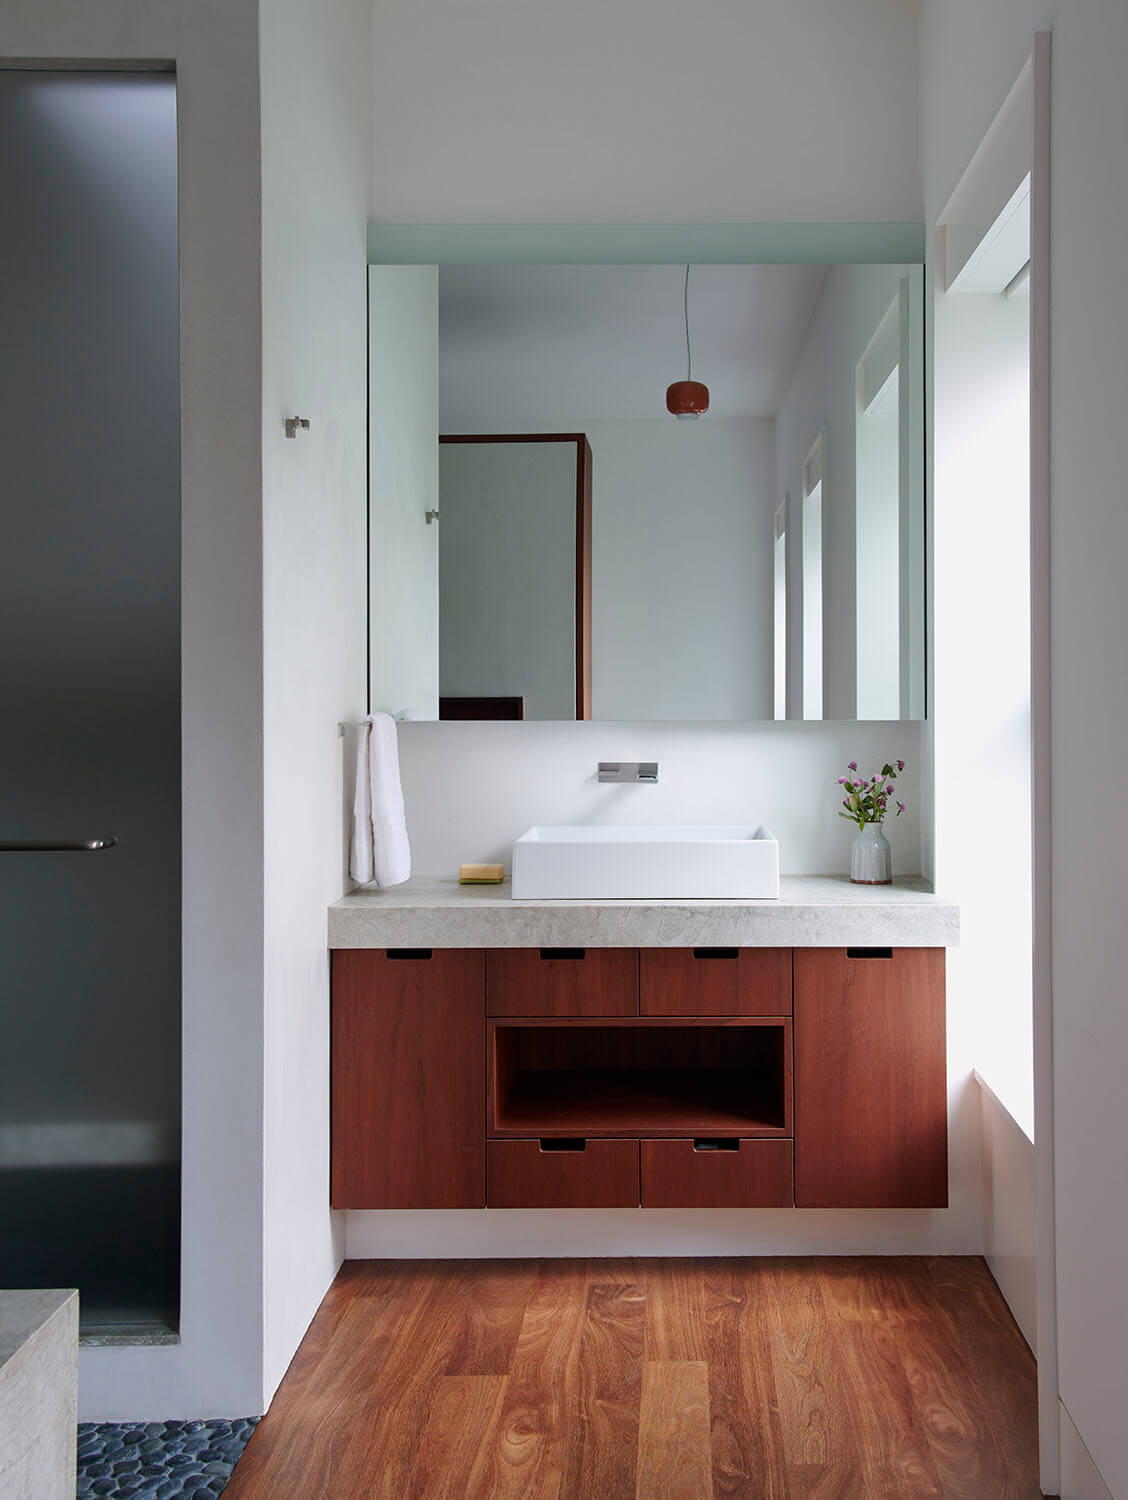 The parents' bathroom of this Park Slope addition has his and hers vanities flanking the walk-in shower.